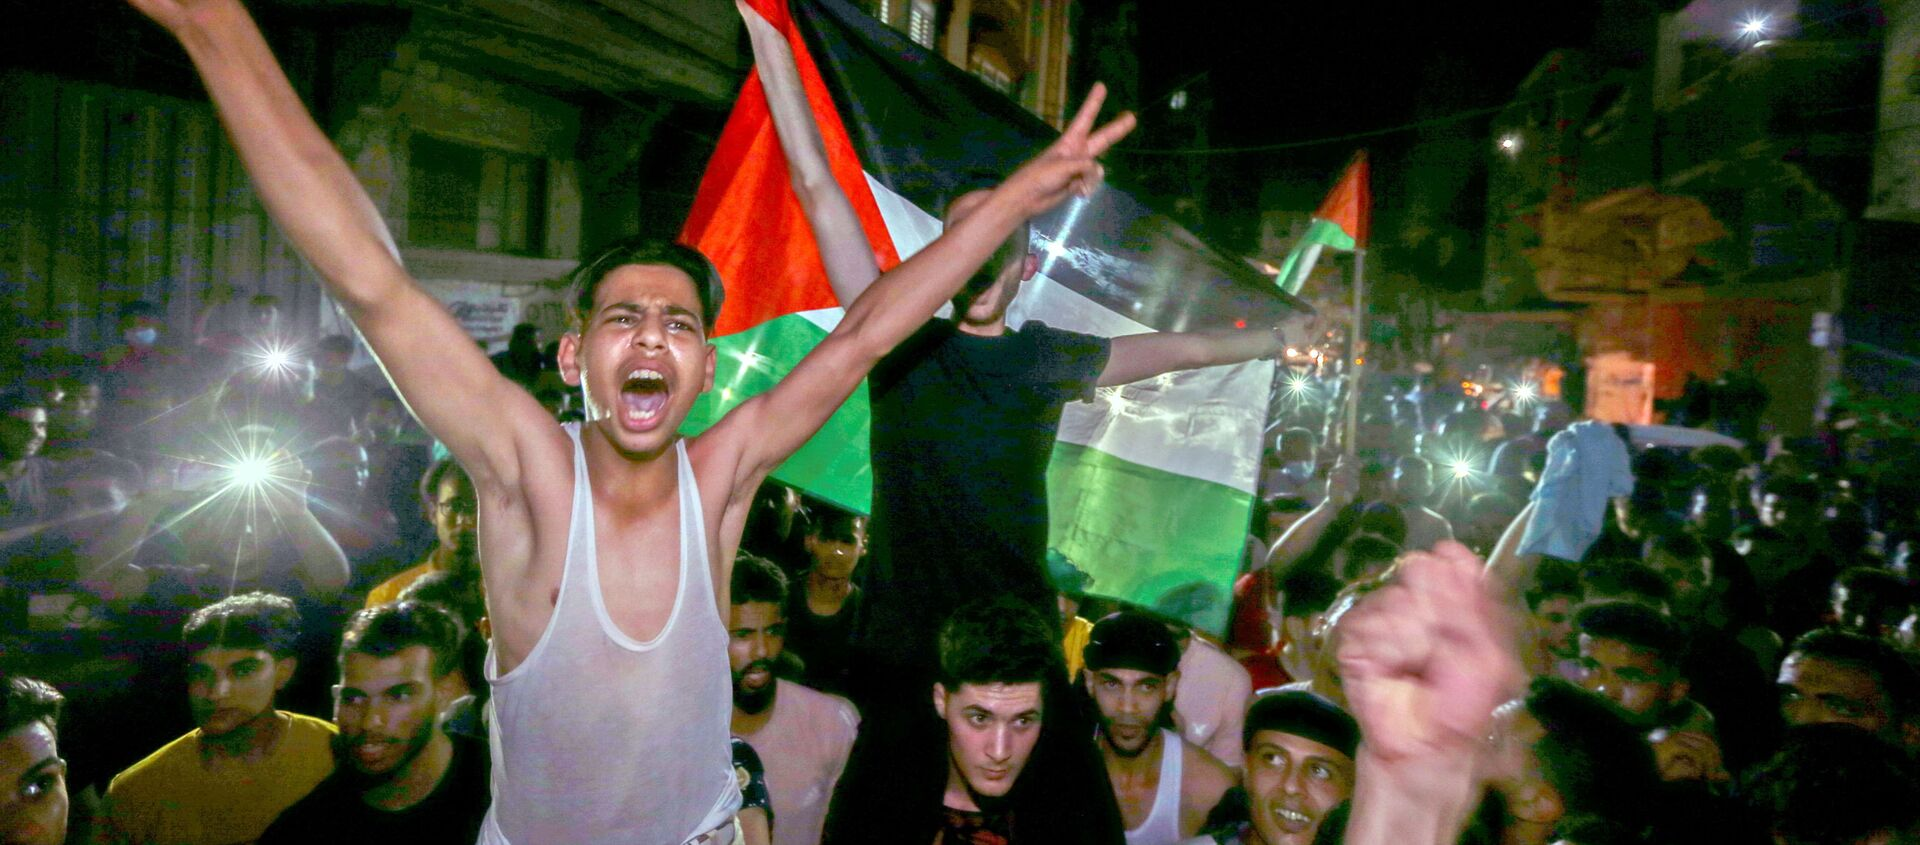 Palestinians celebrate in the streets following a ceasefire, in the southern Gaza Strip May 21, 2021. - Sputnik International, 1920